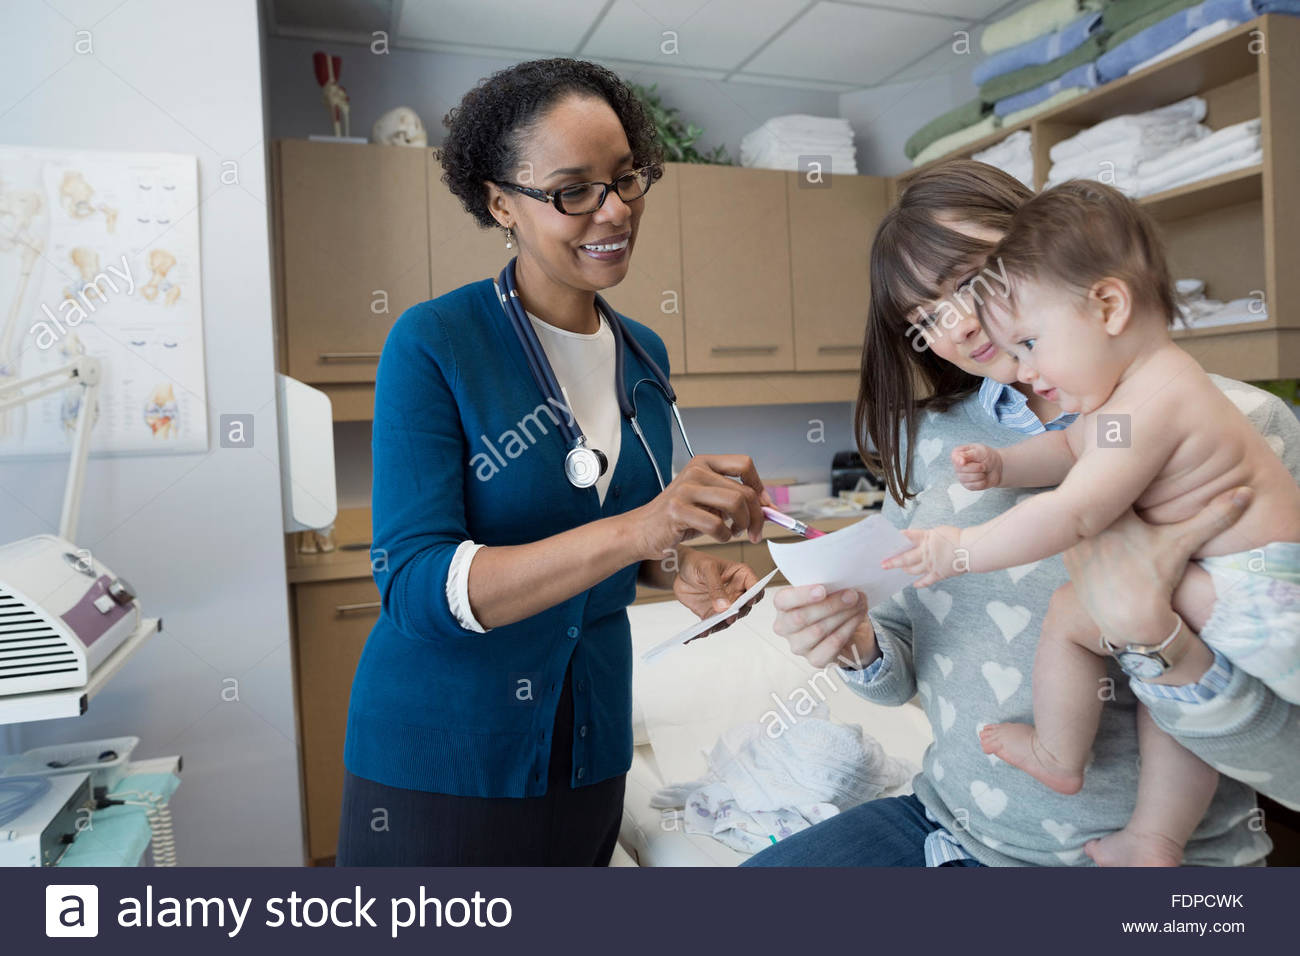 Pediatrician explaining prescription to mother and baby - Stock Image